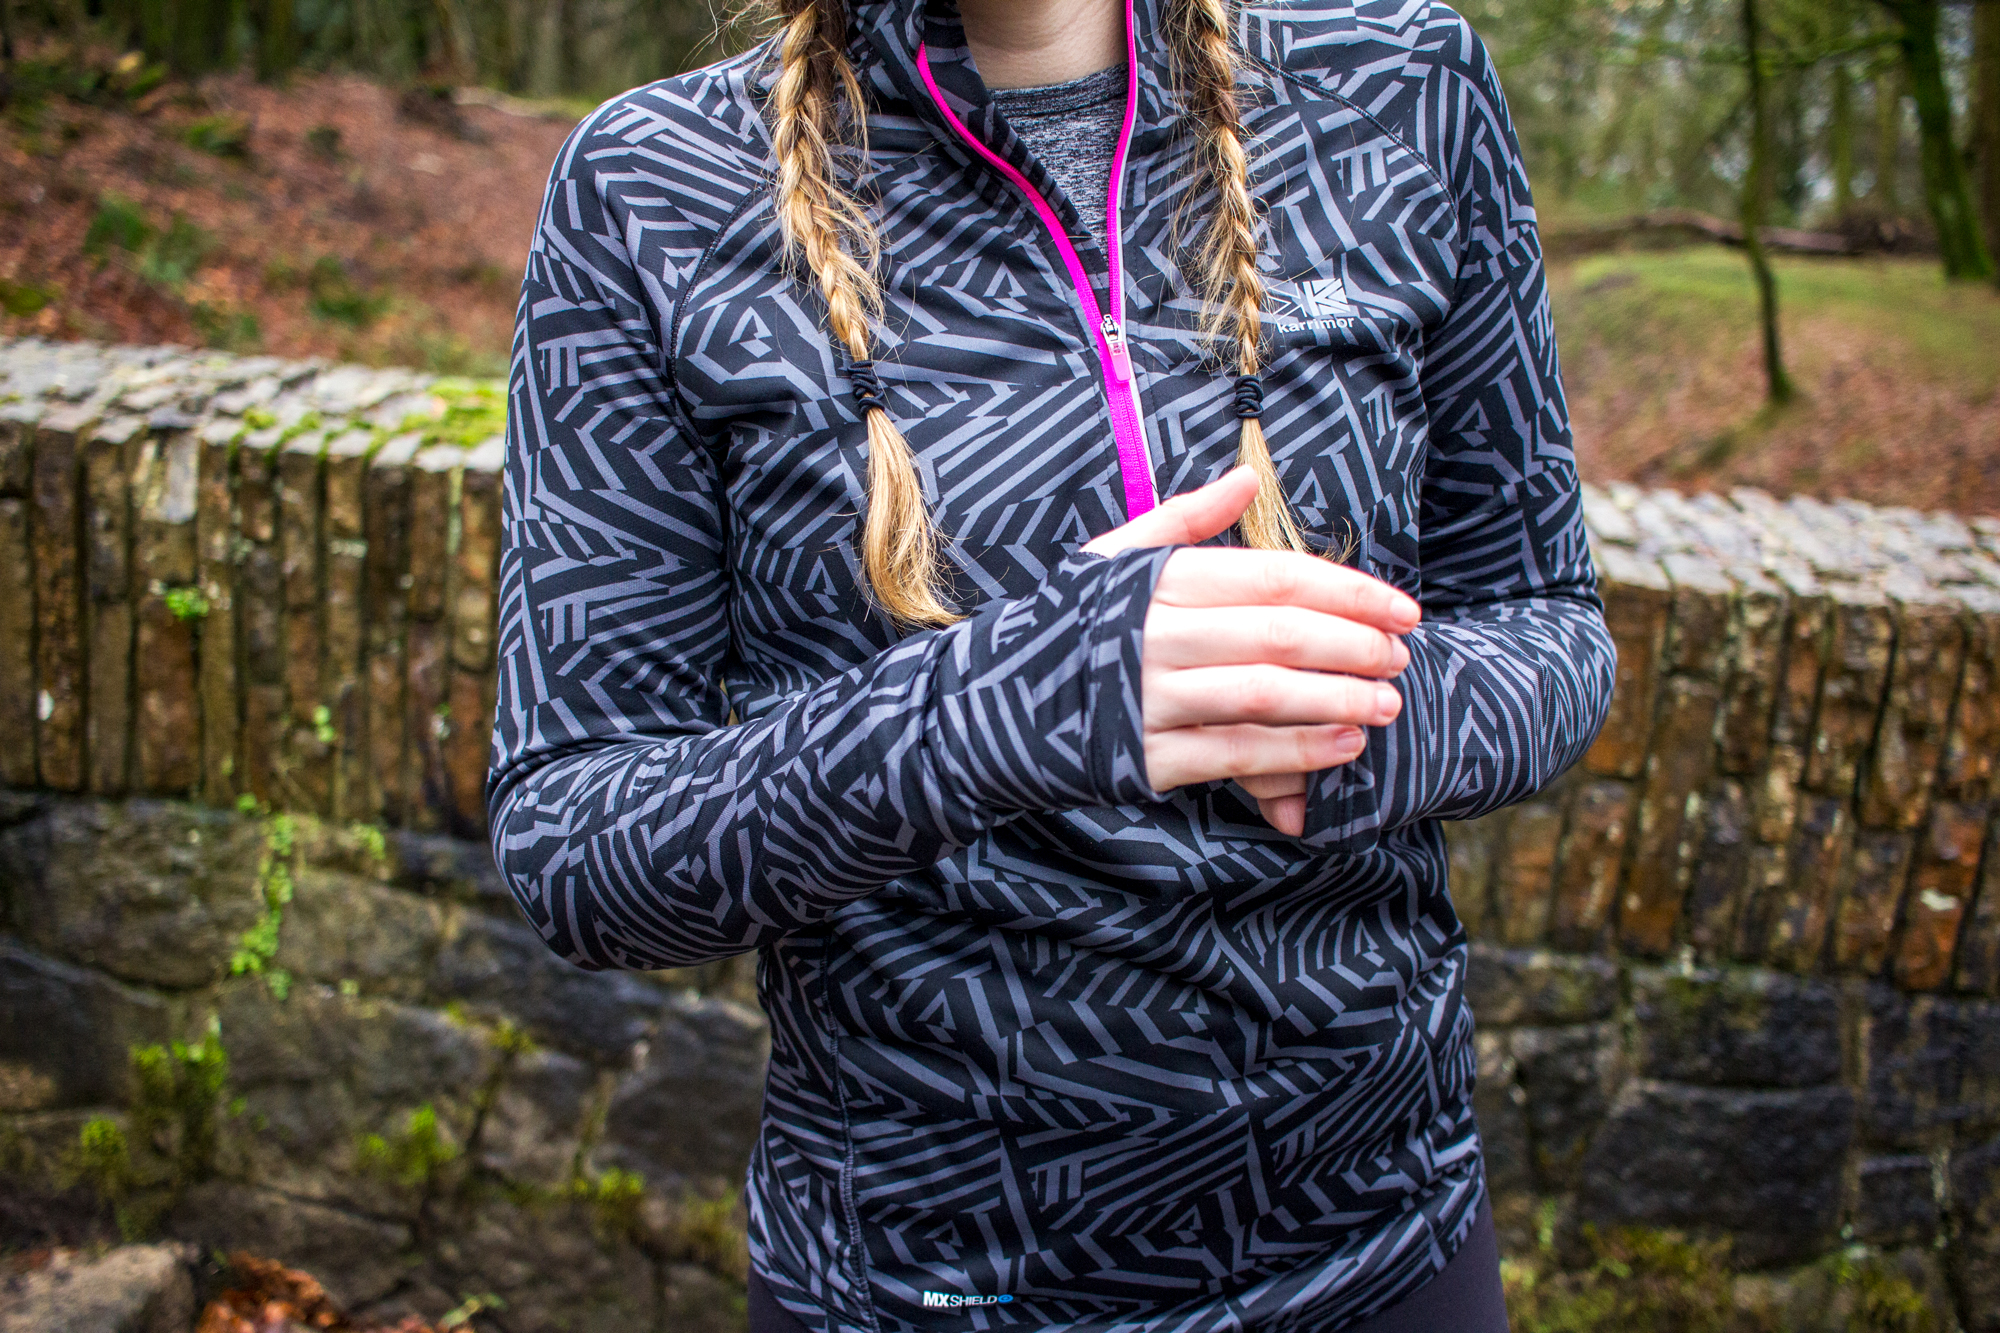 How To Keep Running When The Weather Sucks | Girl in Windproofed Jacket | awaywithkatie.com